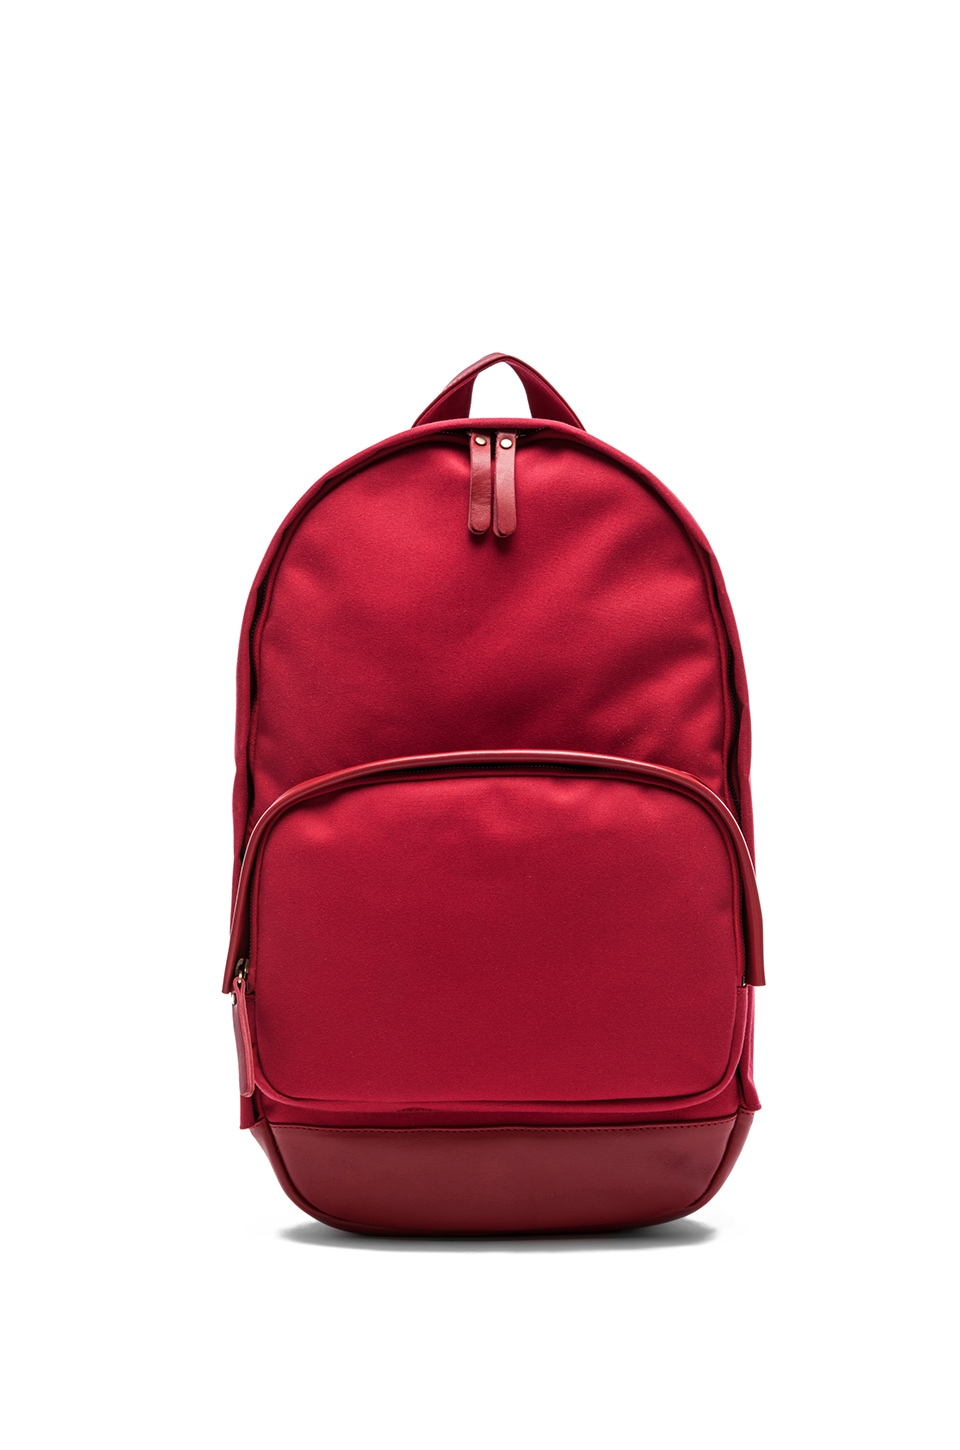 Haerfest Backpack in Red